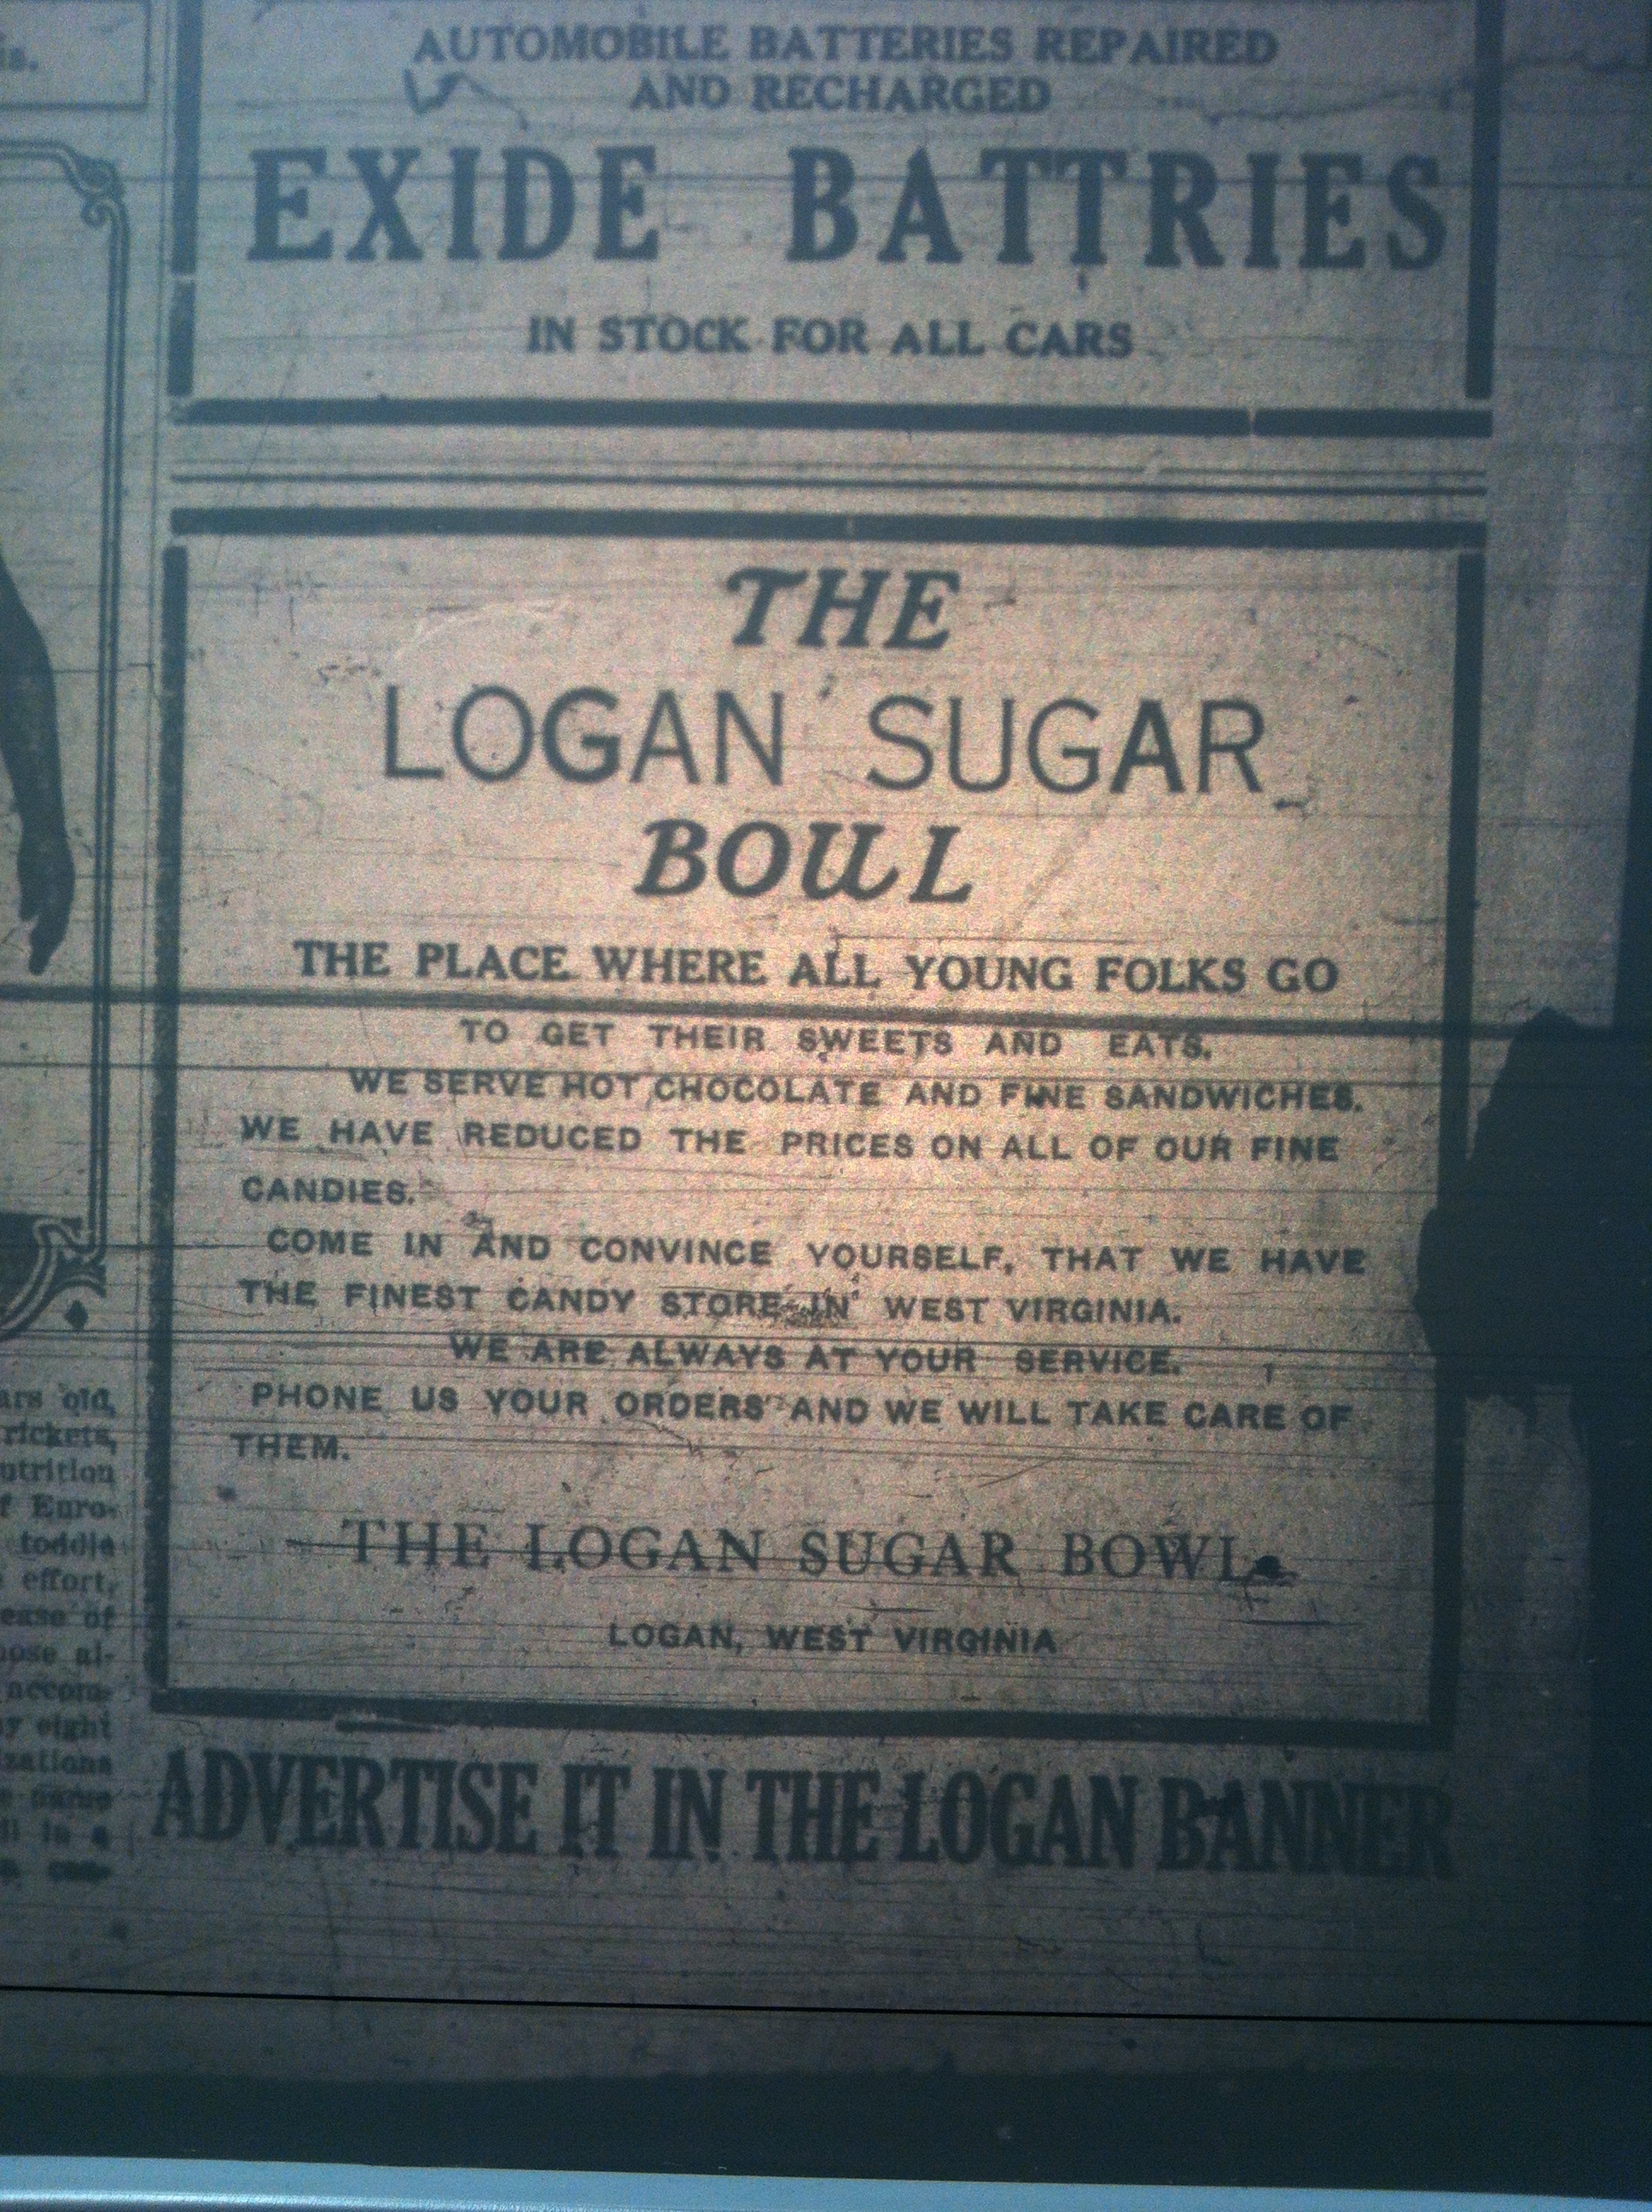 Logan Sugar Bowl Ad LB 01.14.1921.JPG